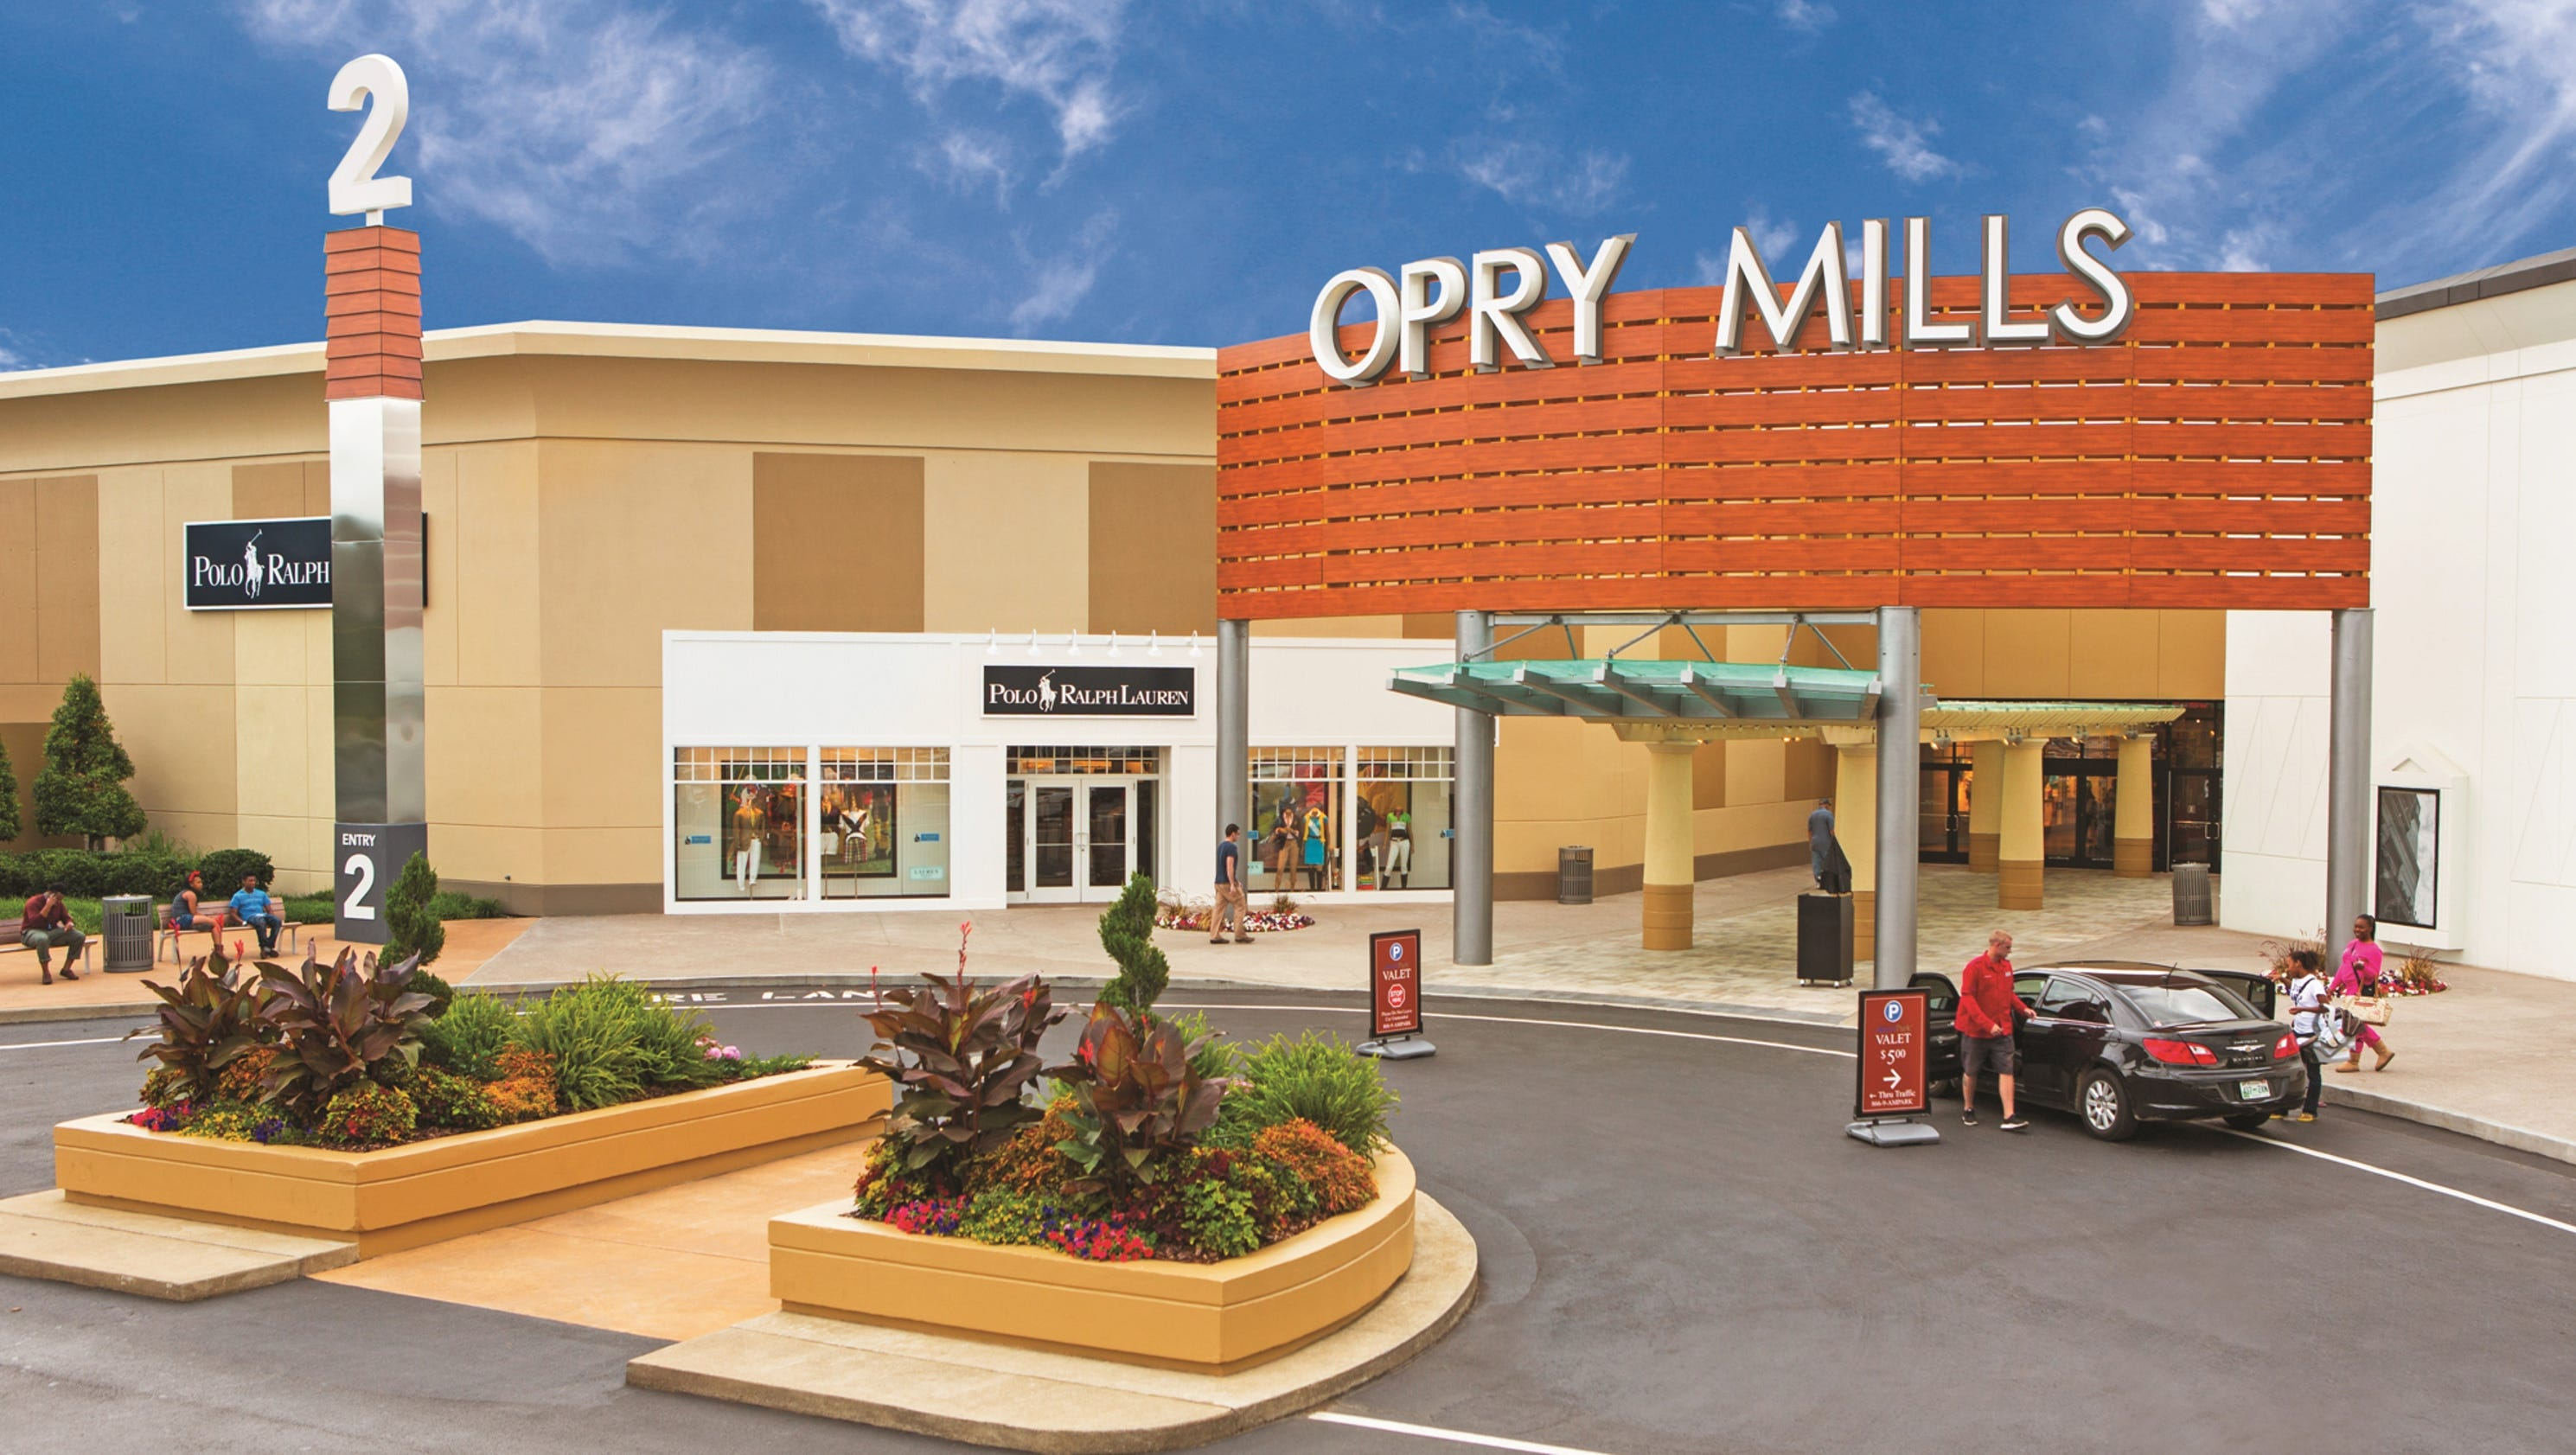 Known as the apple barn, Opry Mills is Tennessee's largest outlet mall with household names like Bath and Body Works, Game Stop, Earthbound, Old Navy, Lego, Forever 21, Payless and Verizon.